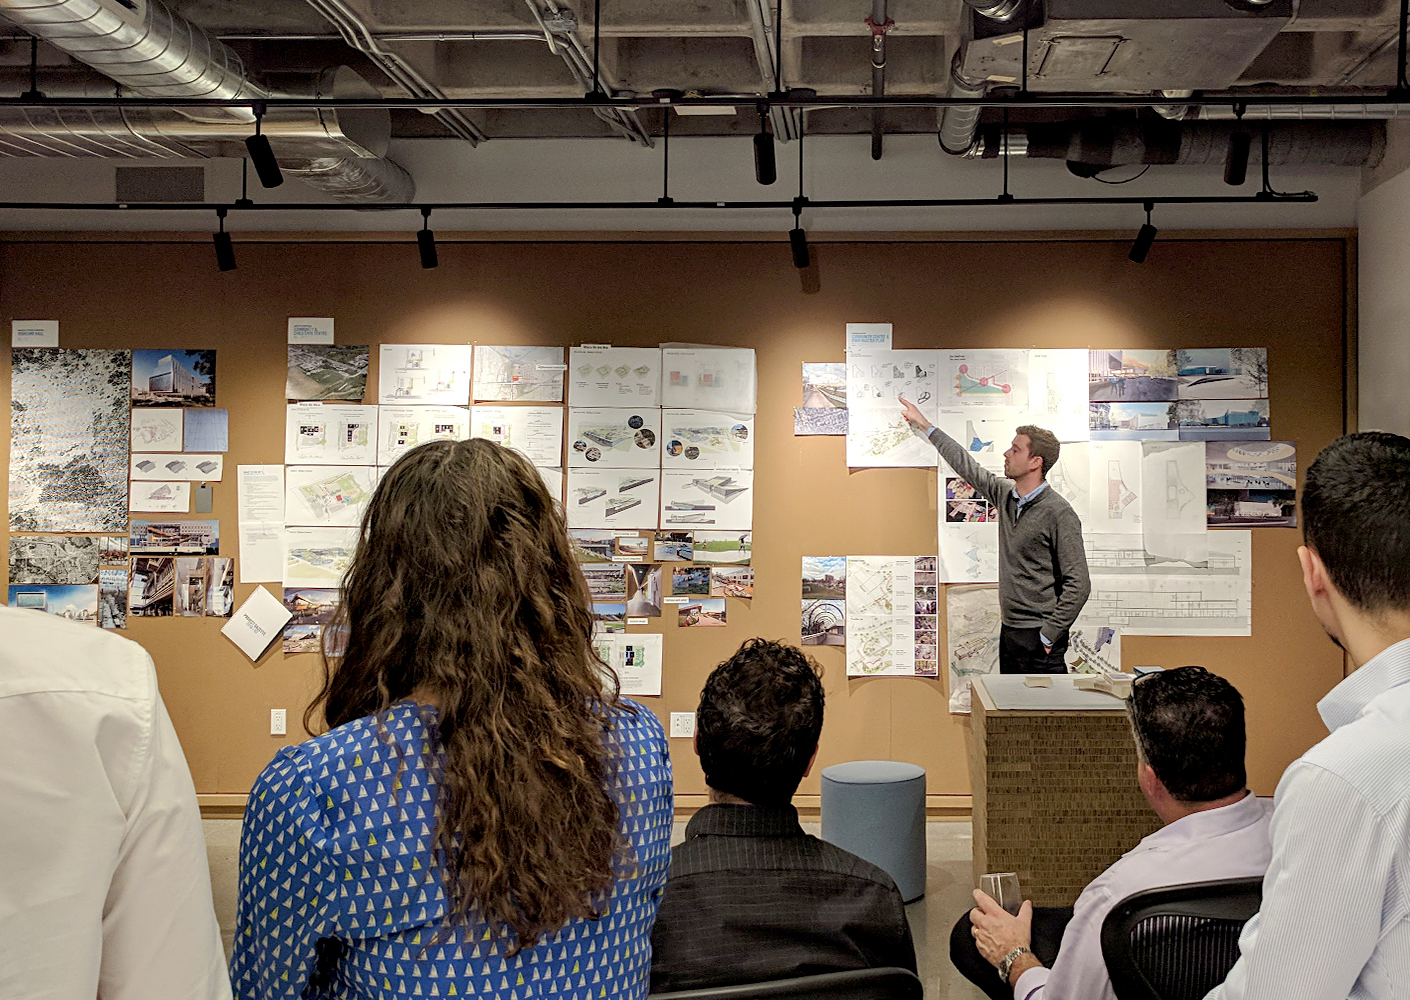 Studio members discuss projects during biweekly Design review Panel presentations